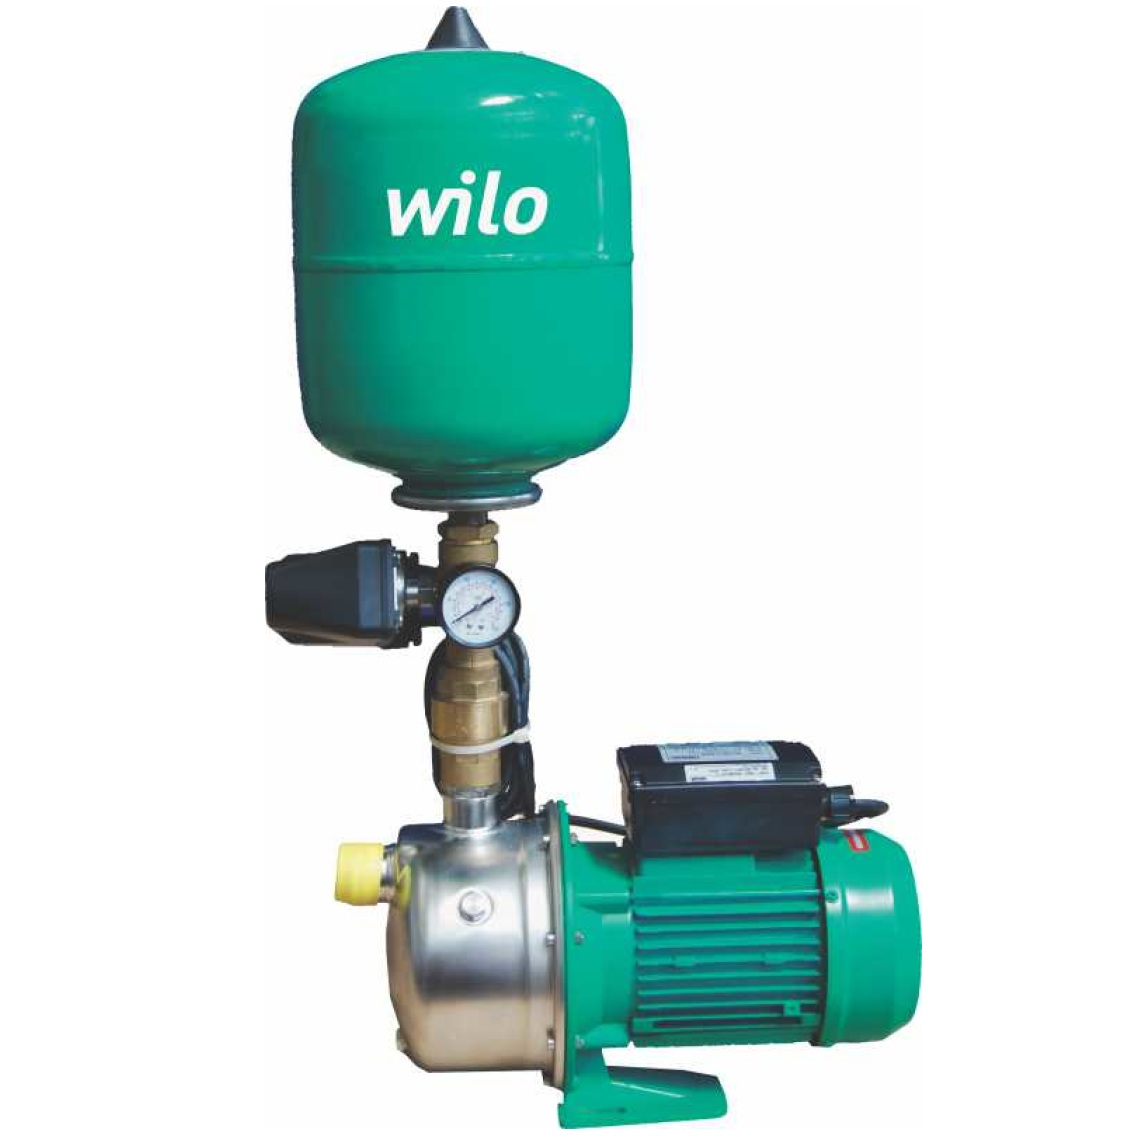 Products and expertise | Wilo